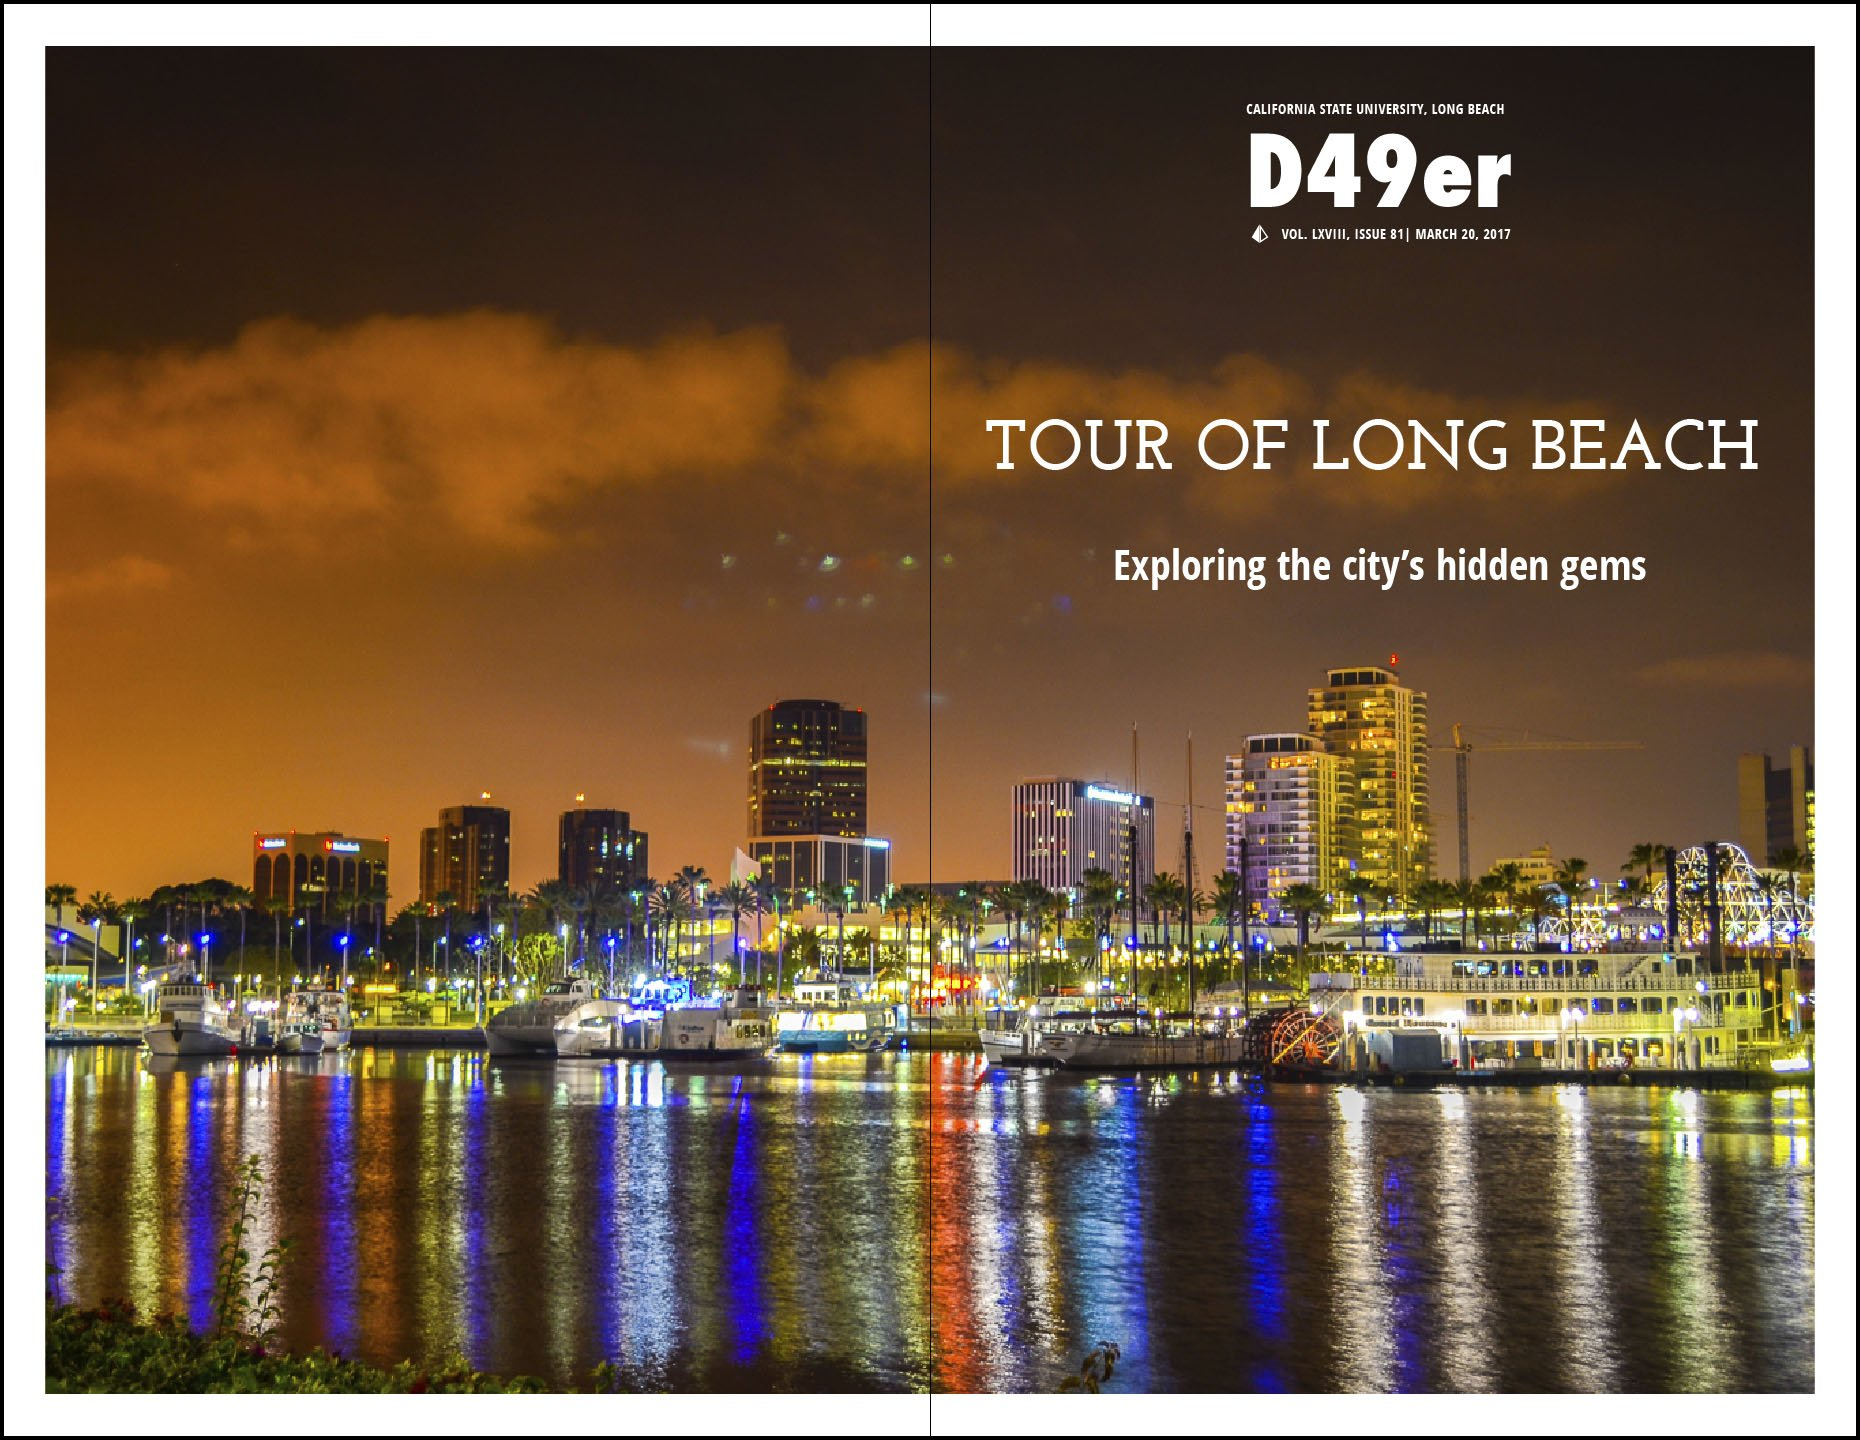 Pick up your copy of today's issue of the Daily 49er to check out the hidden gems of Long Beach! #LongBeach #LBGems #49erNow https://t.co/IfvTiw5yGX